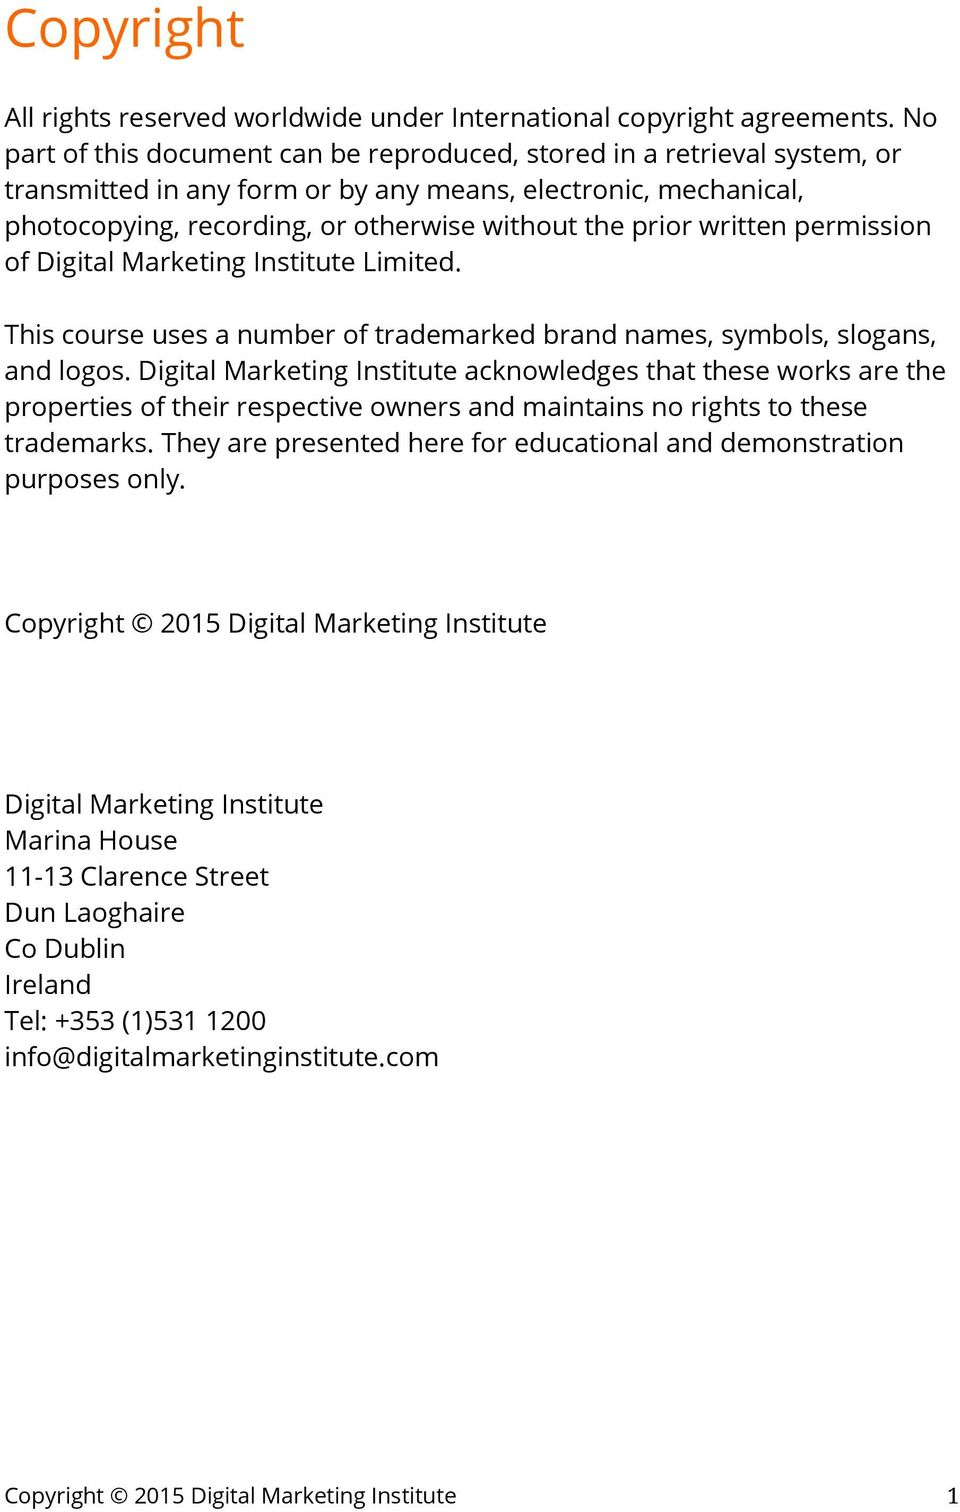 written permission of Digital Marketing Institute Limited. This course uses a number of trademarked brand names, symbols, slogans, and logos.